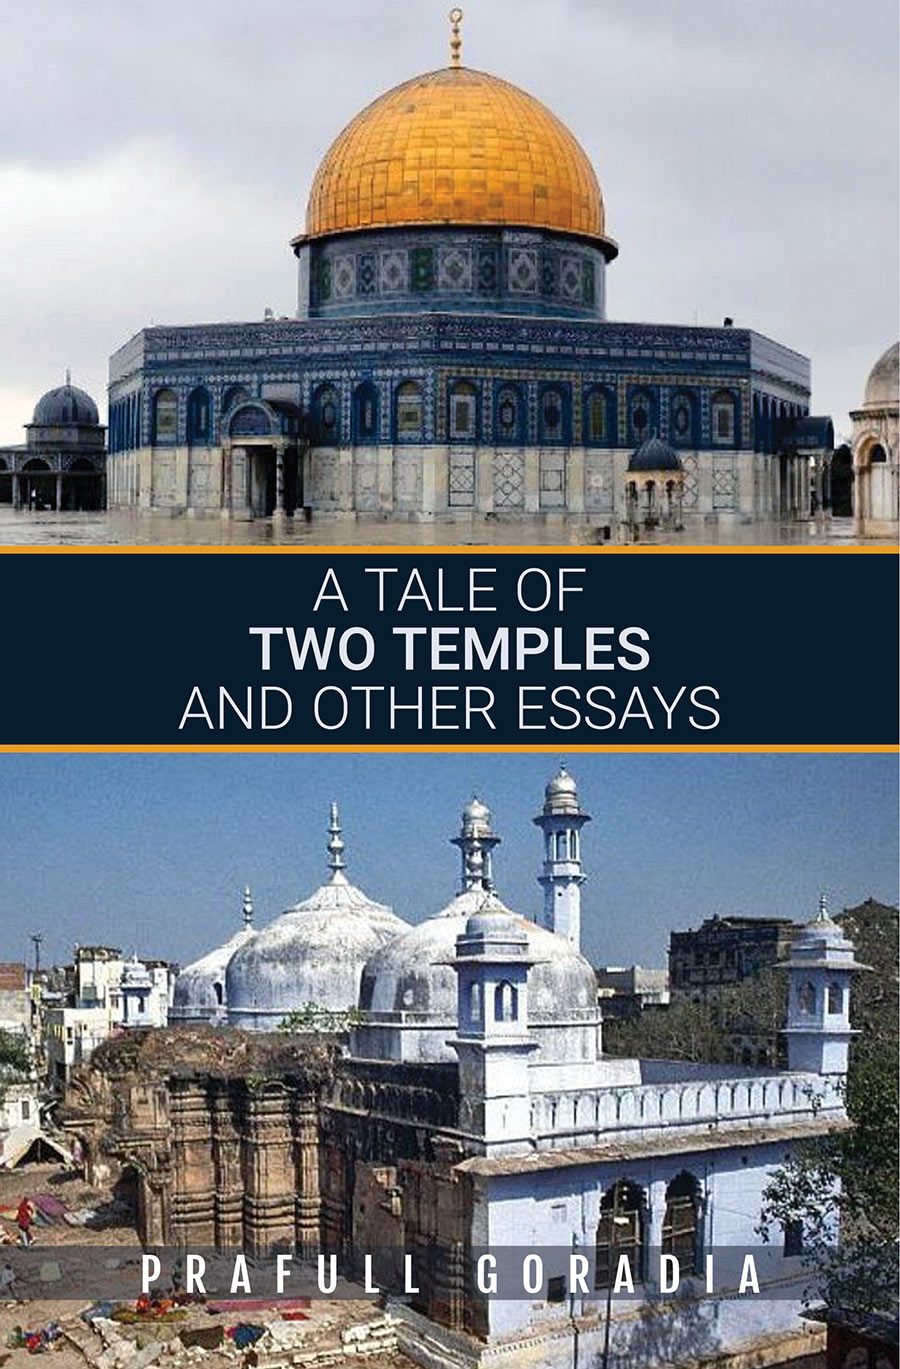 A Tale of Two Temples and Other Essays